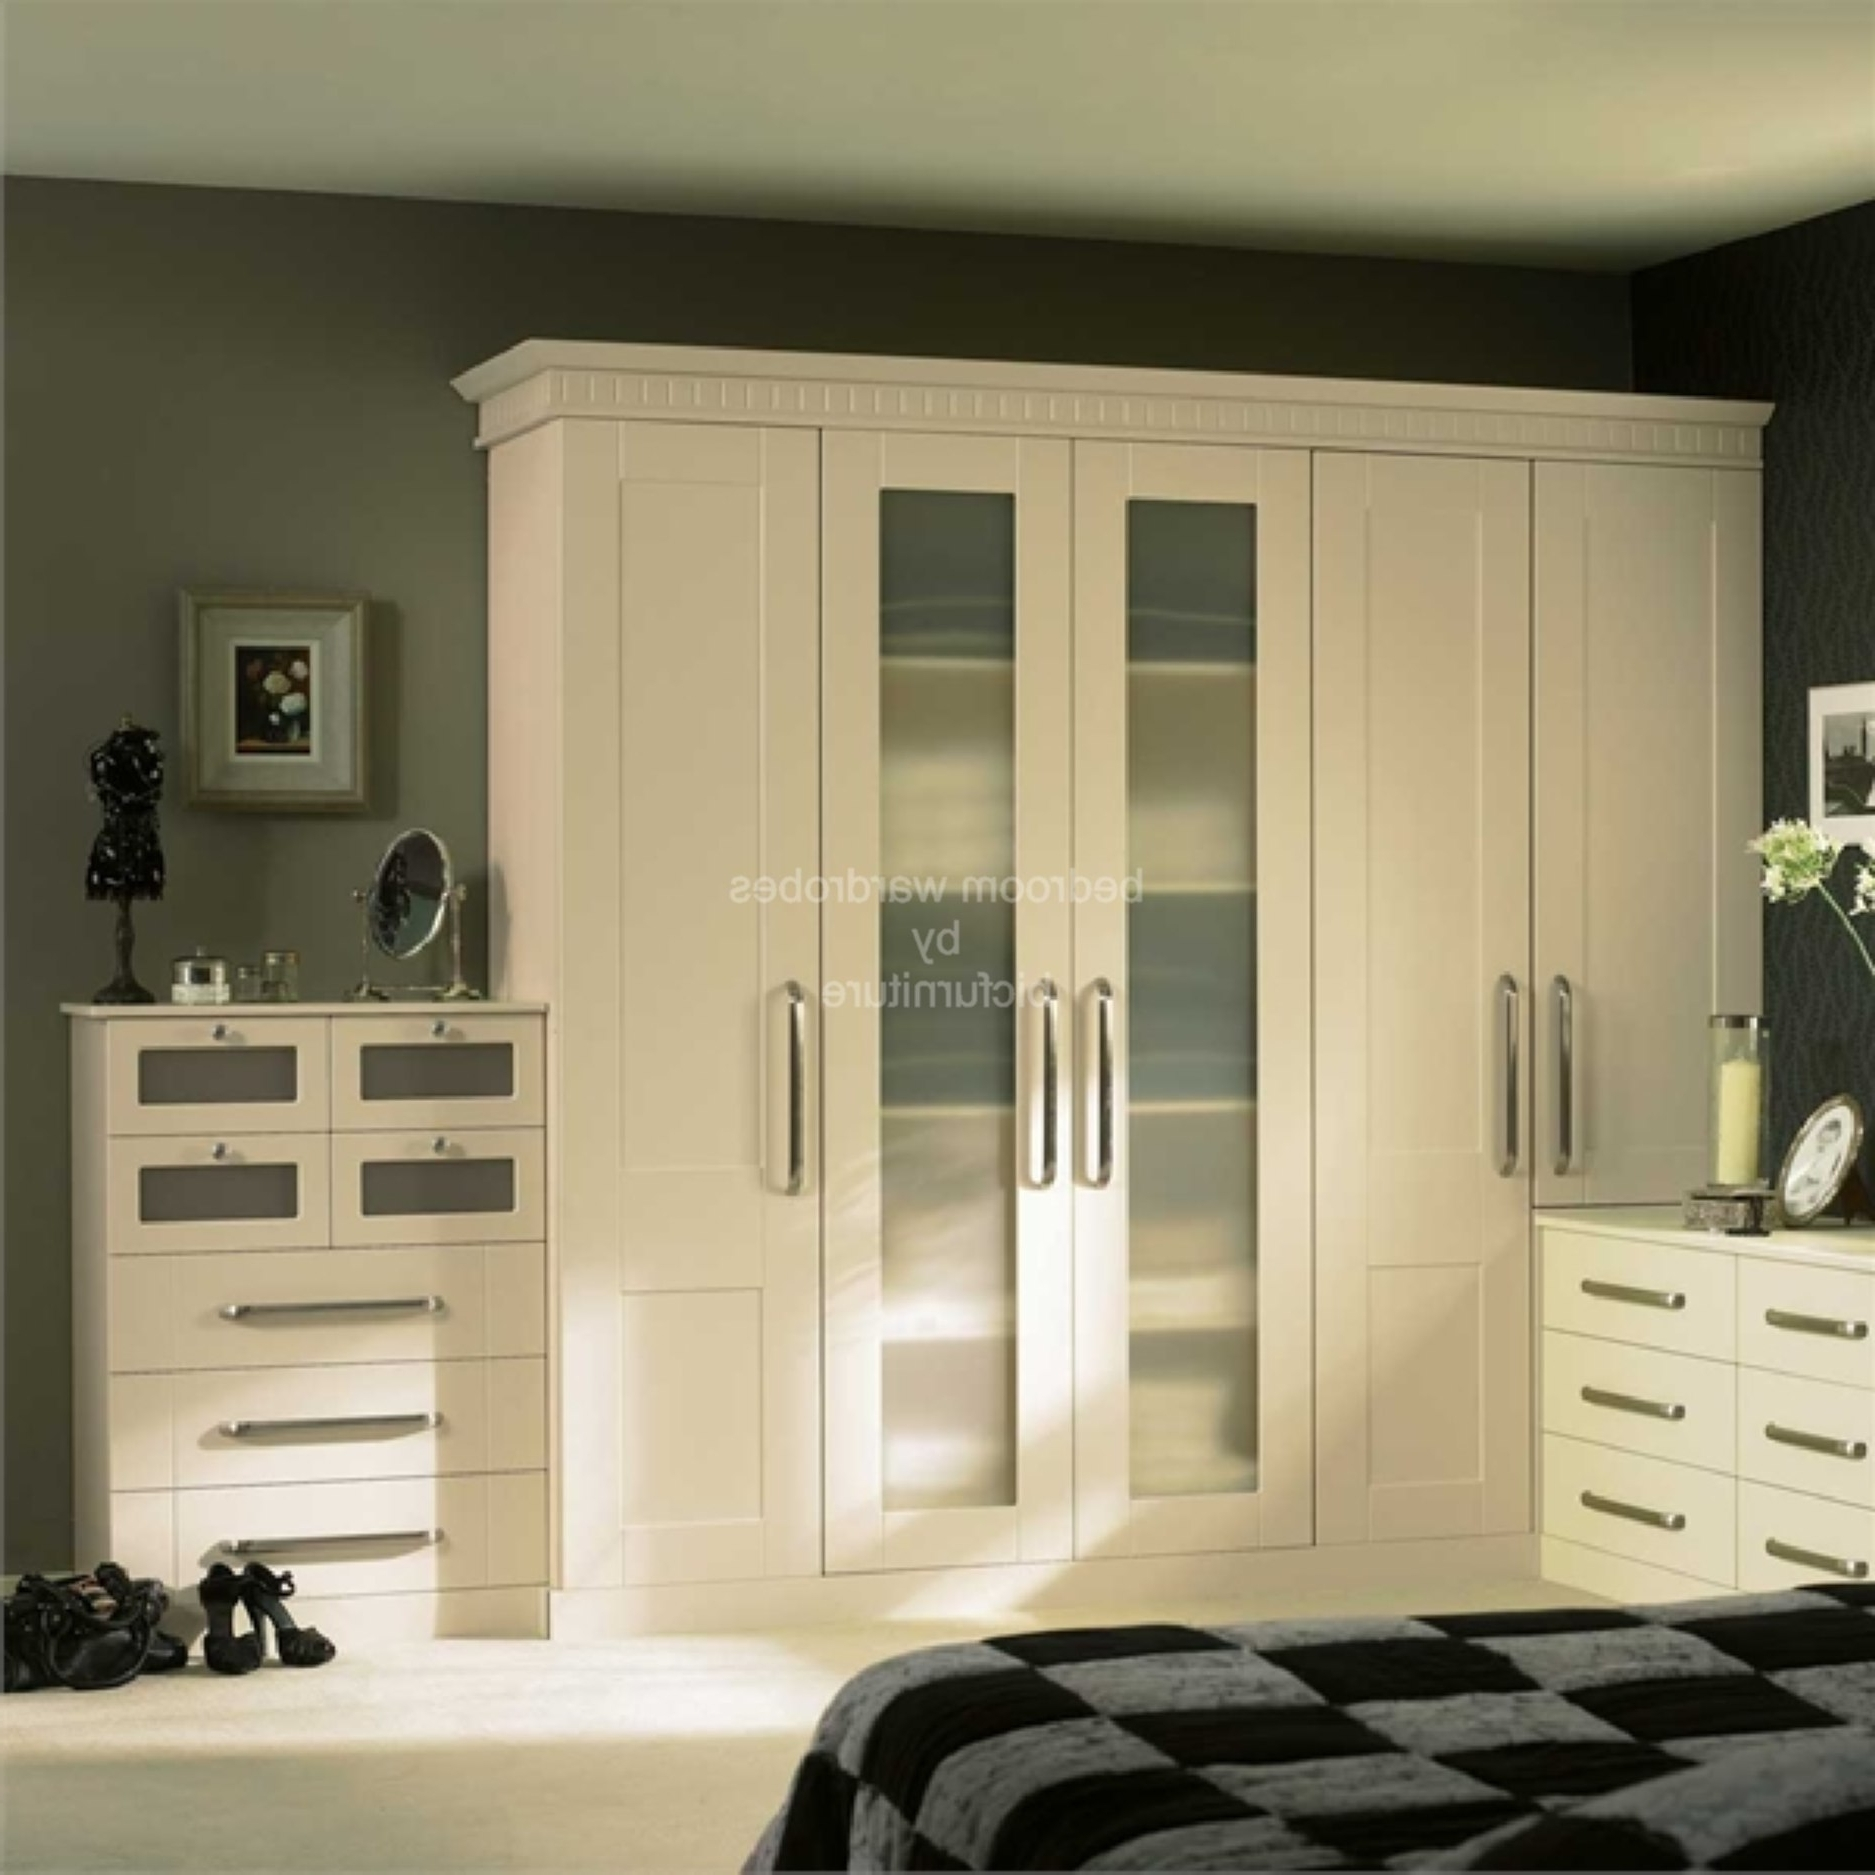 5 Door Wardrobes Bedroom Furniture Regarding Most Up To Date 5 Door Wardrobe Bedroom Furniture (View 5 of 15)